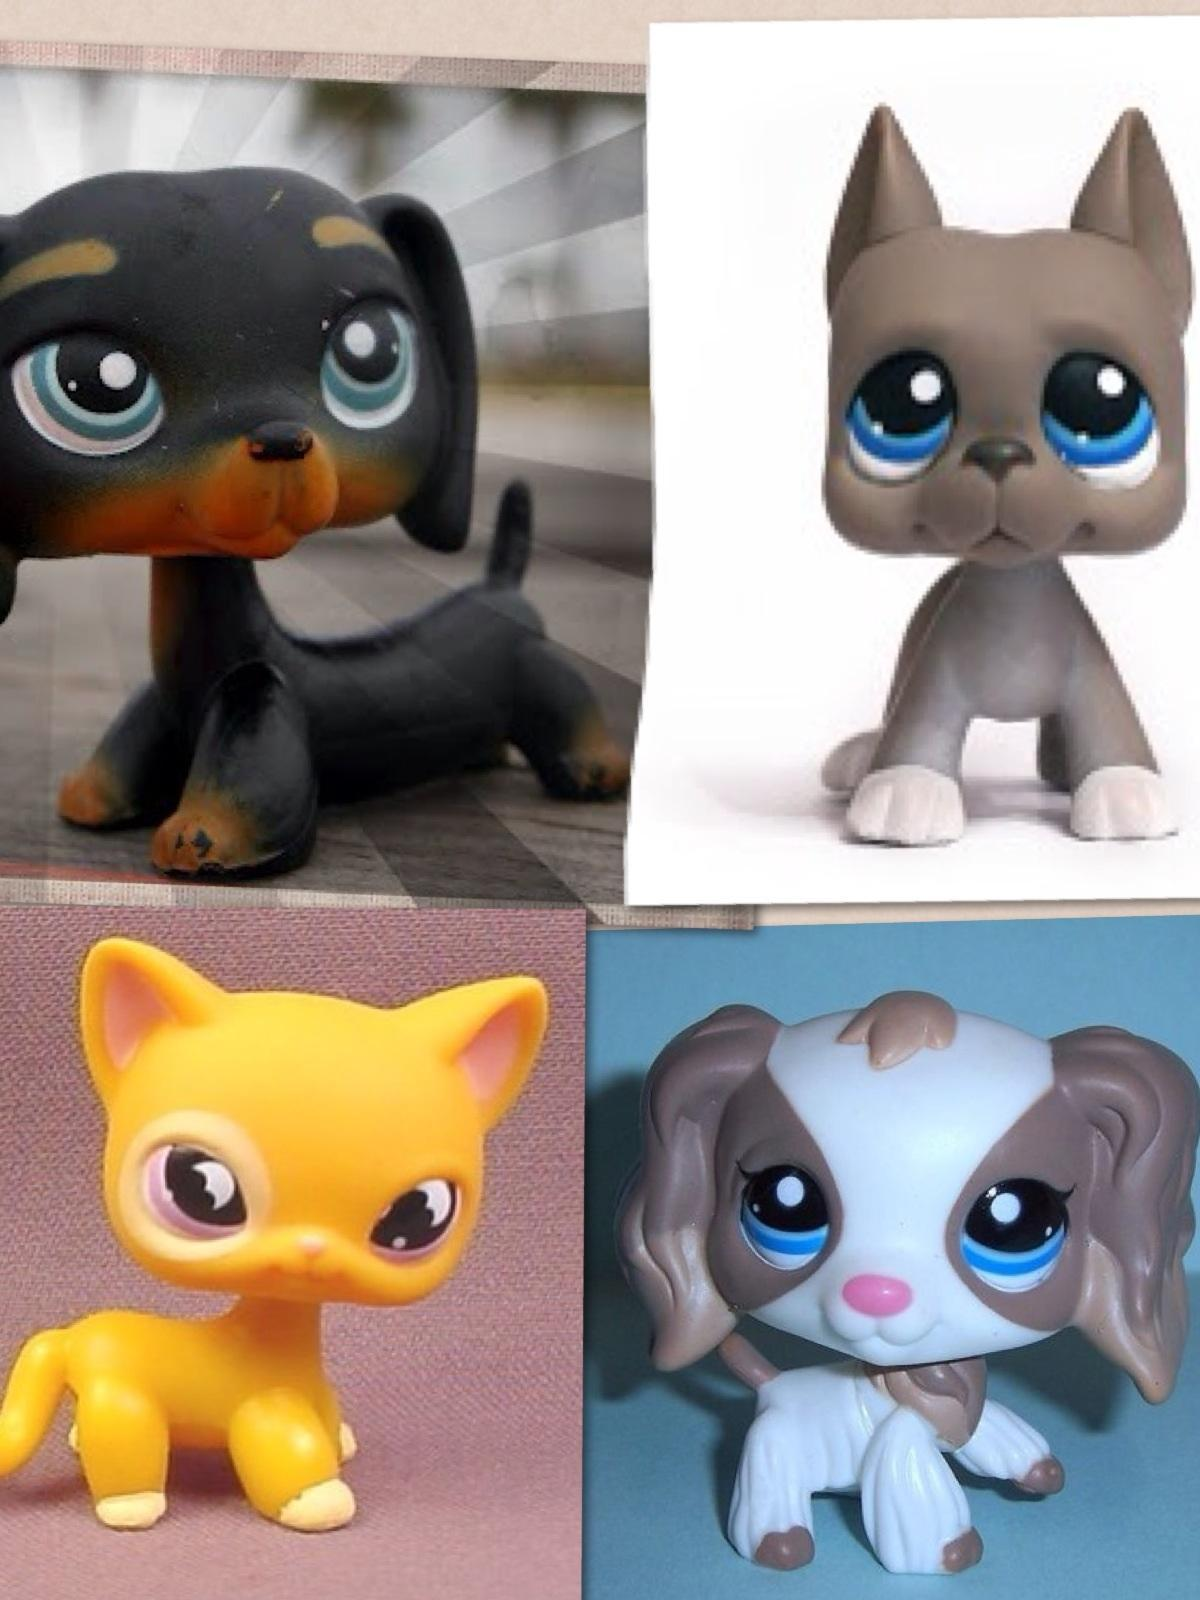 What lps do you want to be